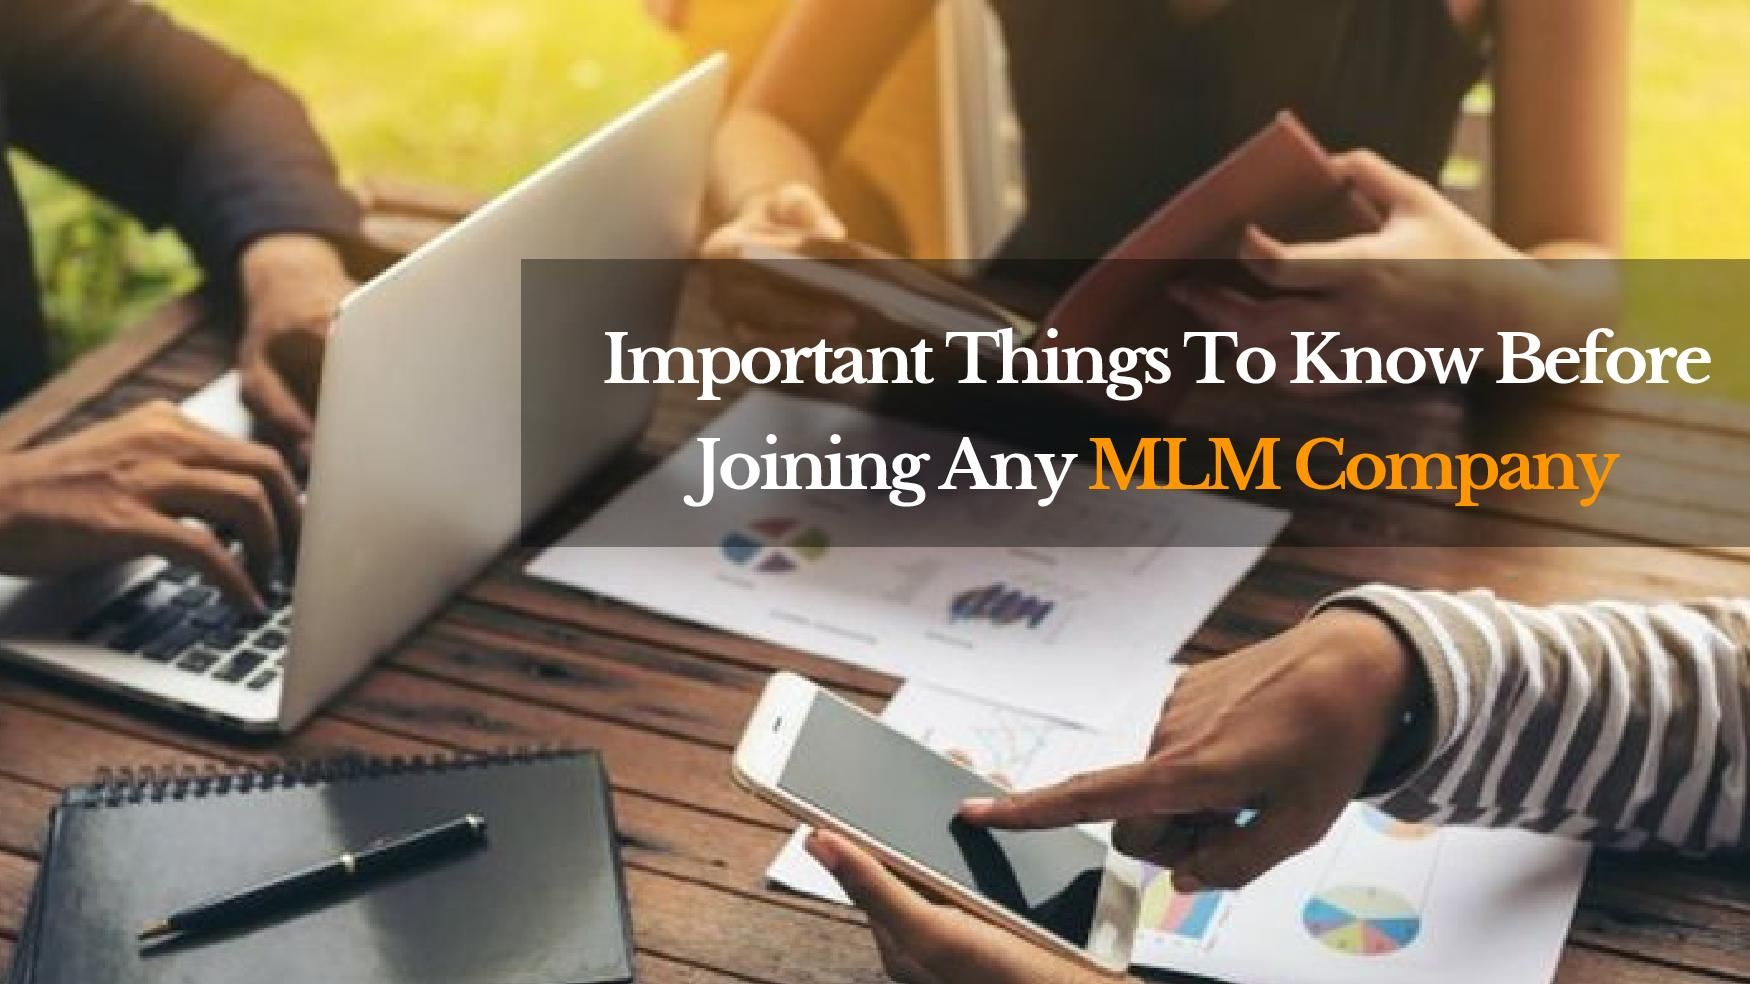 Important Things To Know Before Joining Any MLM Company